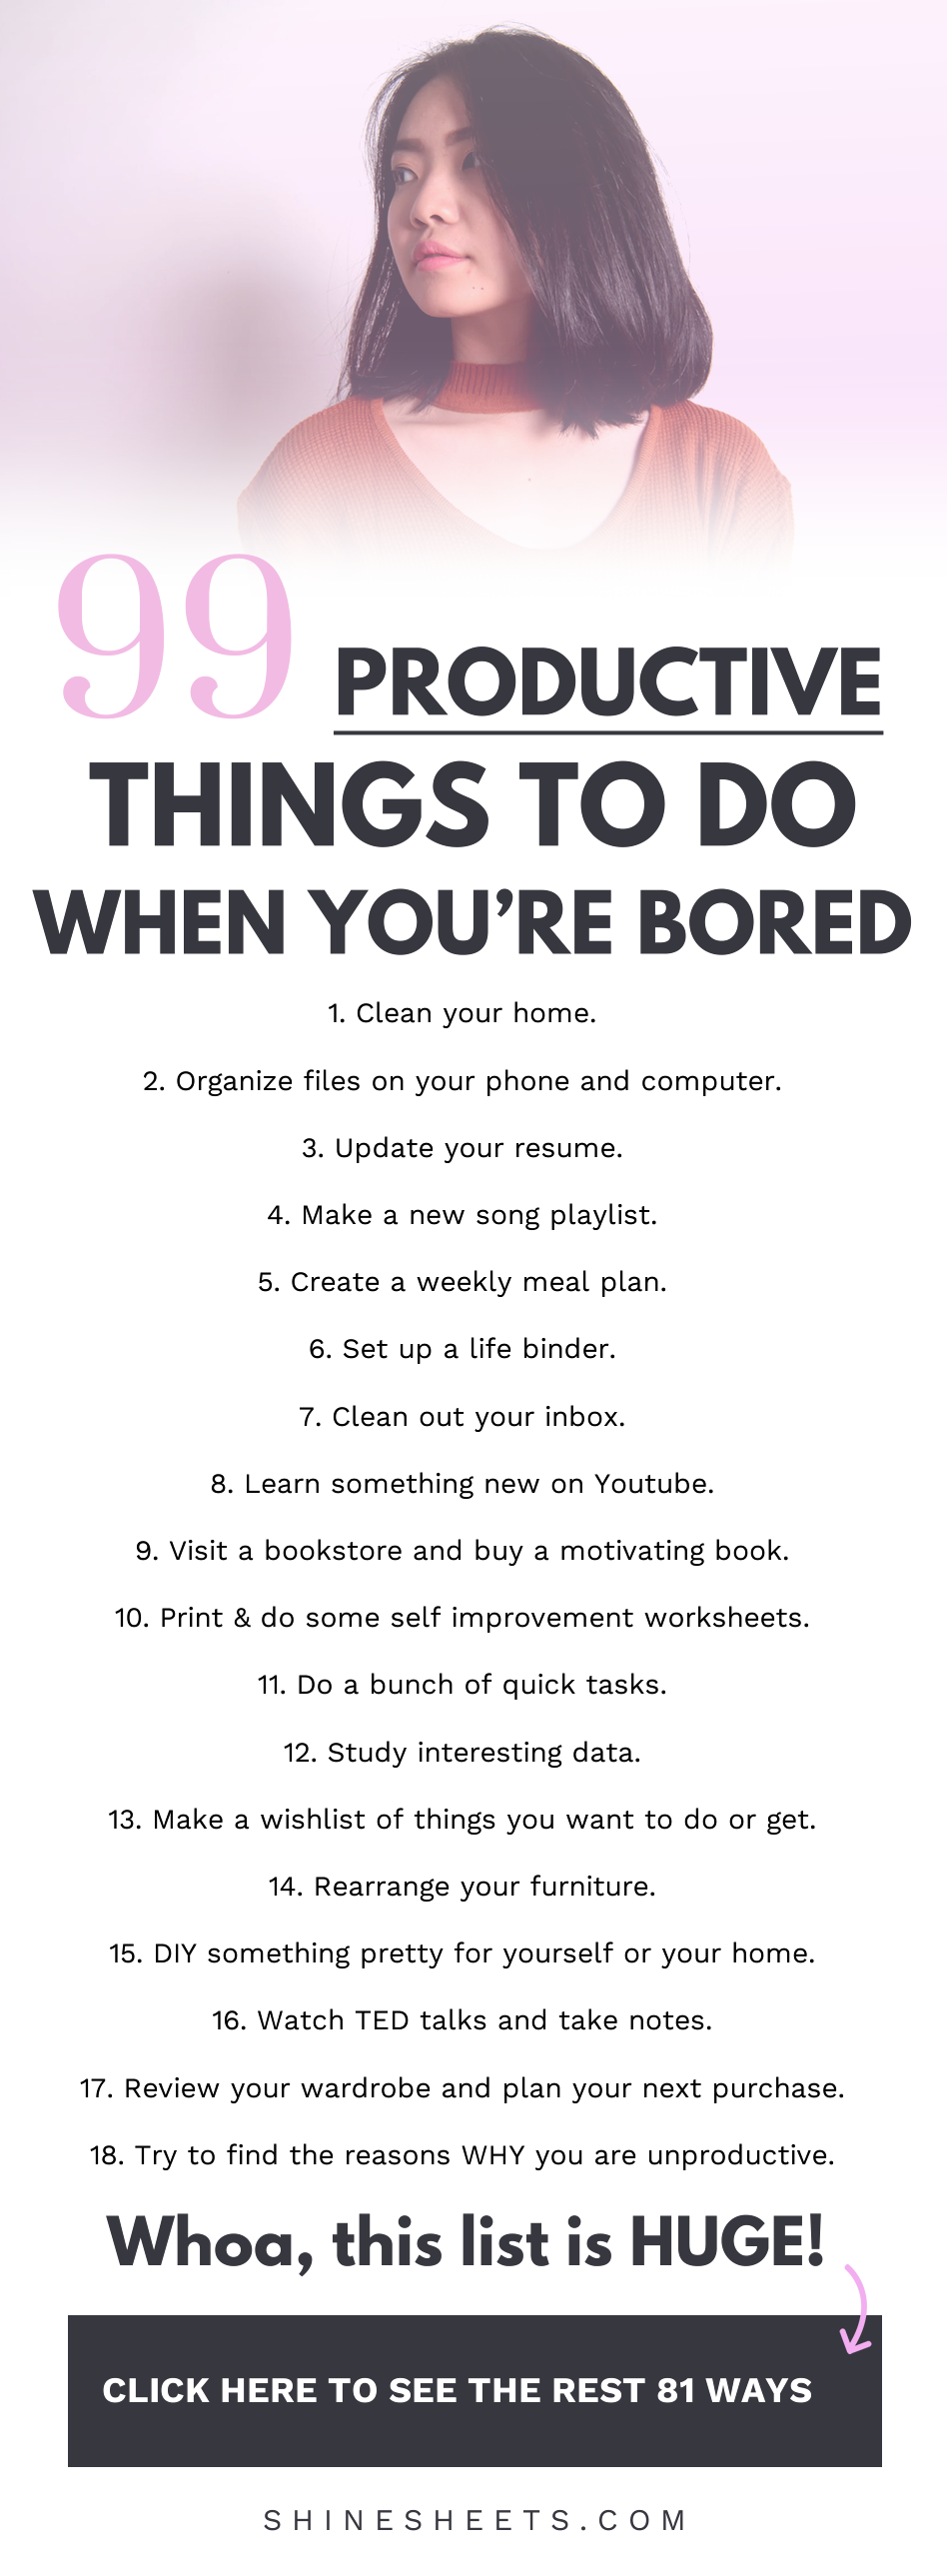 99 Productive Things To Do When You're Bored